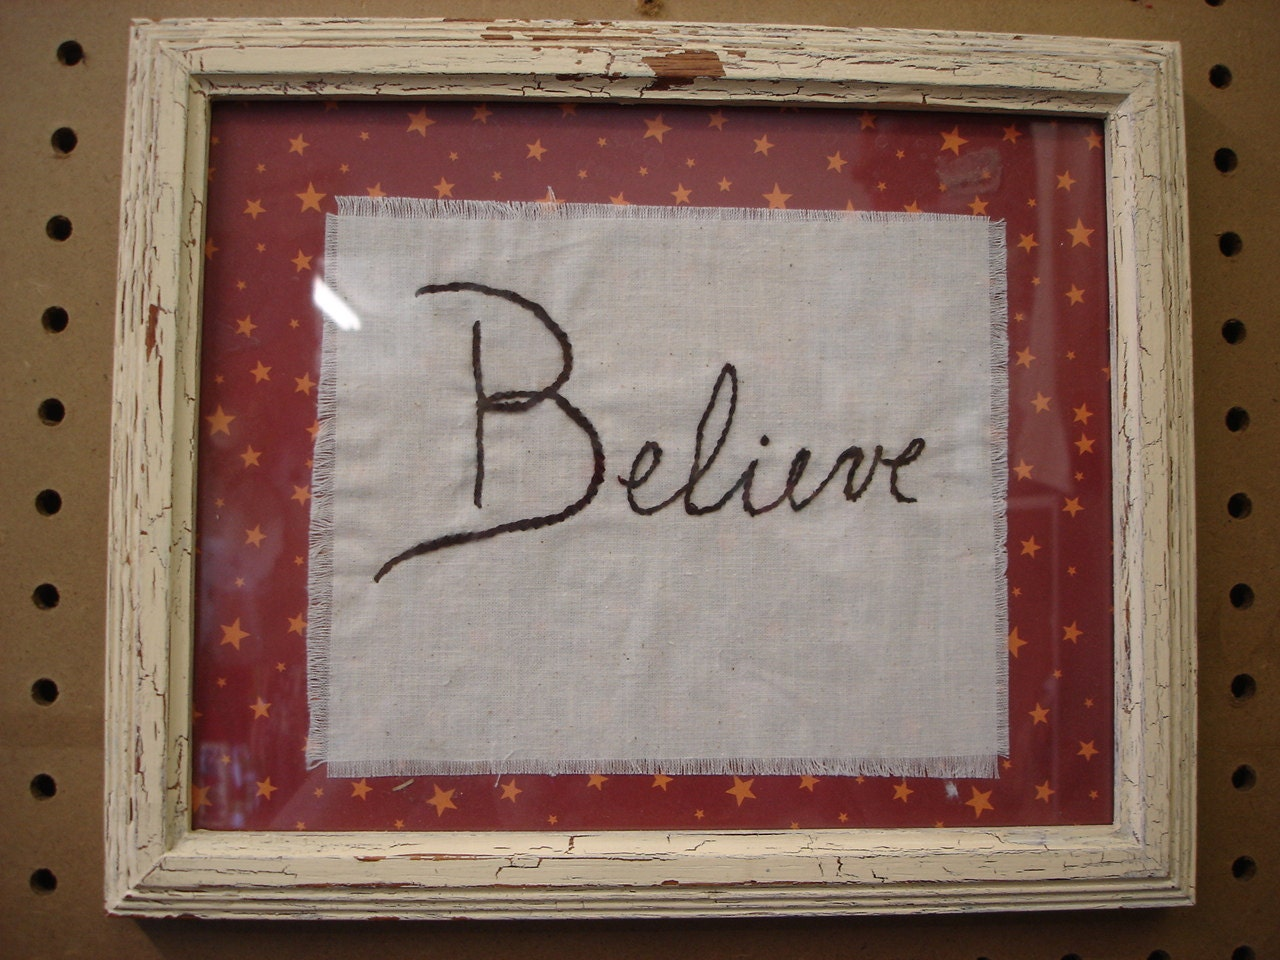 Inspiring,Phrases,Believe,Hand,Stitched,Wall,Decor,Framed,Housewares,Home_Decor,home_decor,phrase,hand_stitch,inspiring,inspire,frame,framed_phrase,for_your_home,wall_decor,gift,houseware,reclaimed,believe,wood,paper,fabric